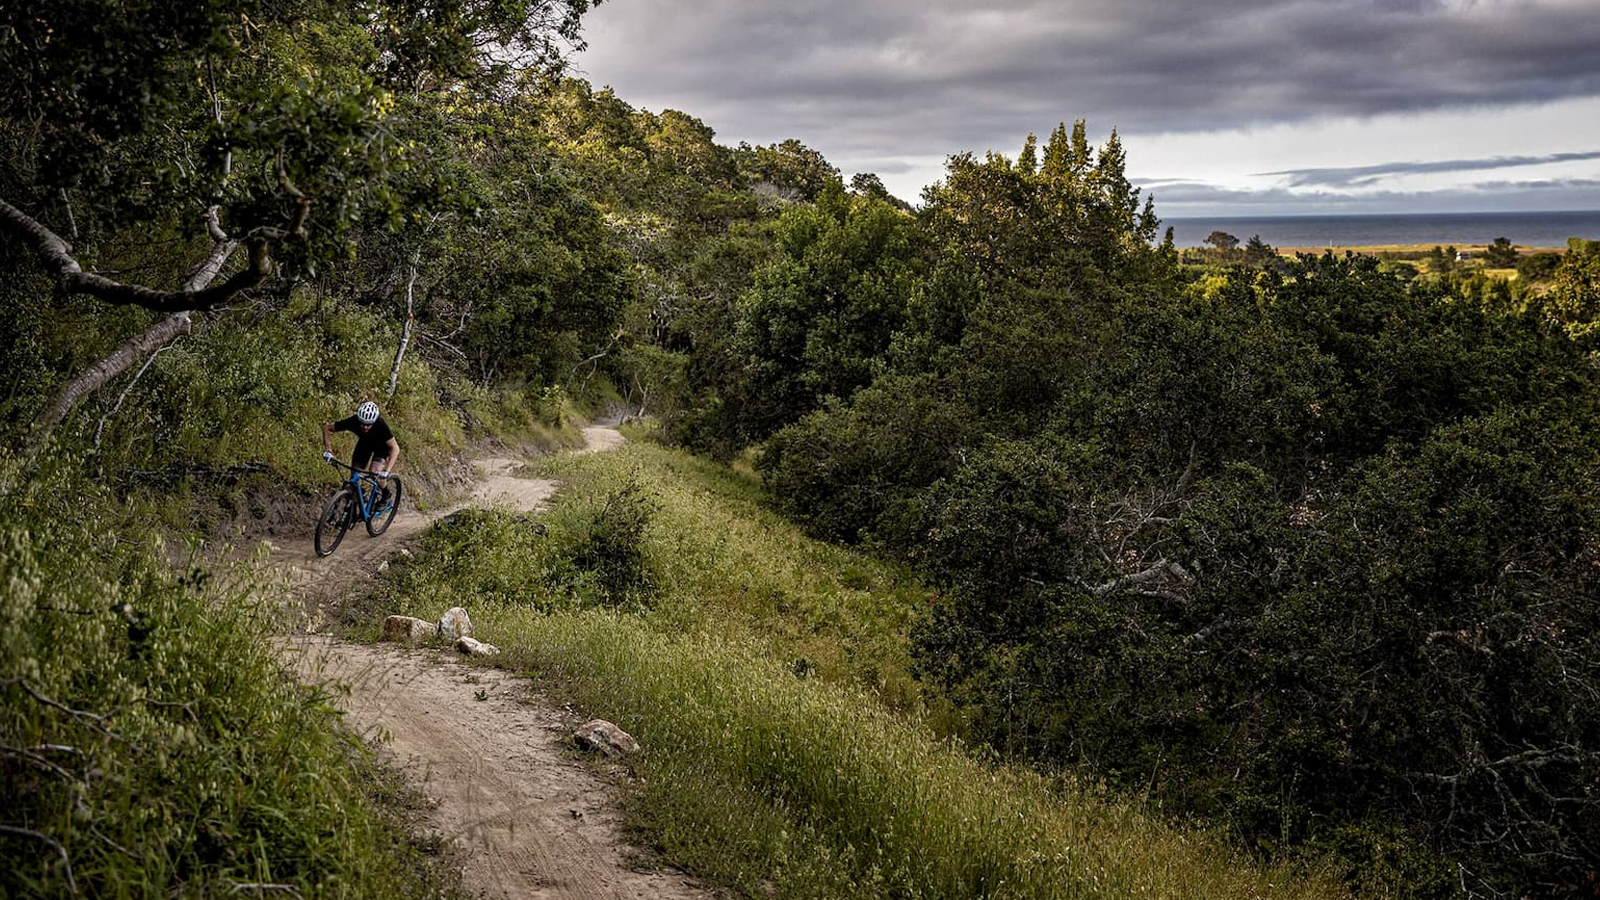 Best mountain bike deals: Today's best deals on hardtails, full-suspension and E-MTB's